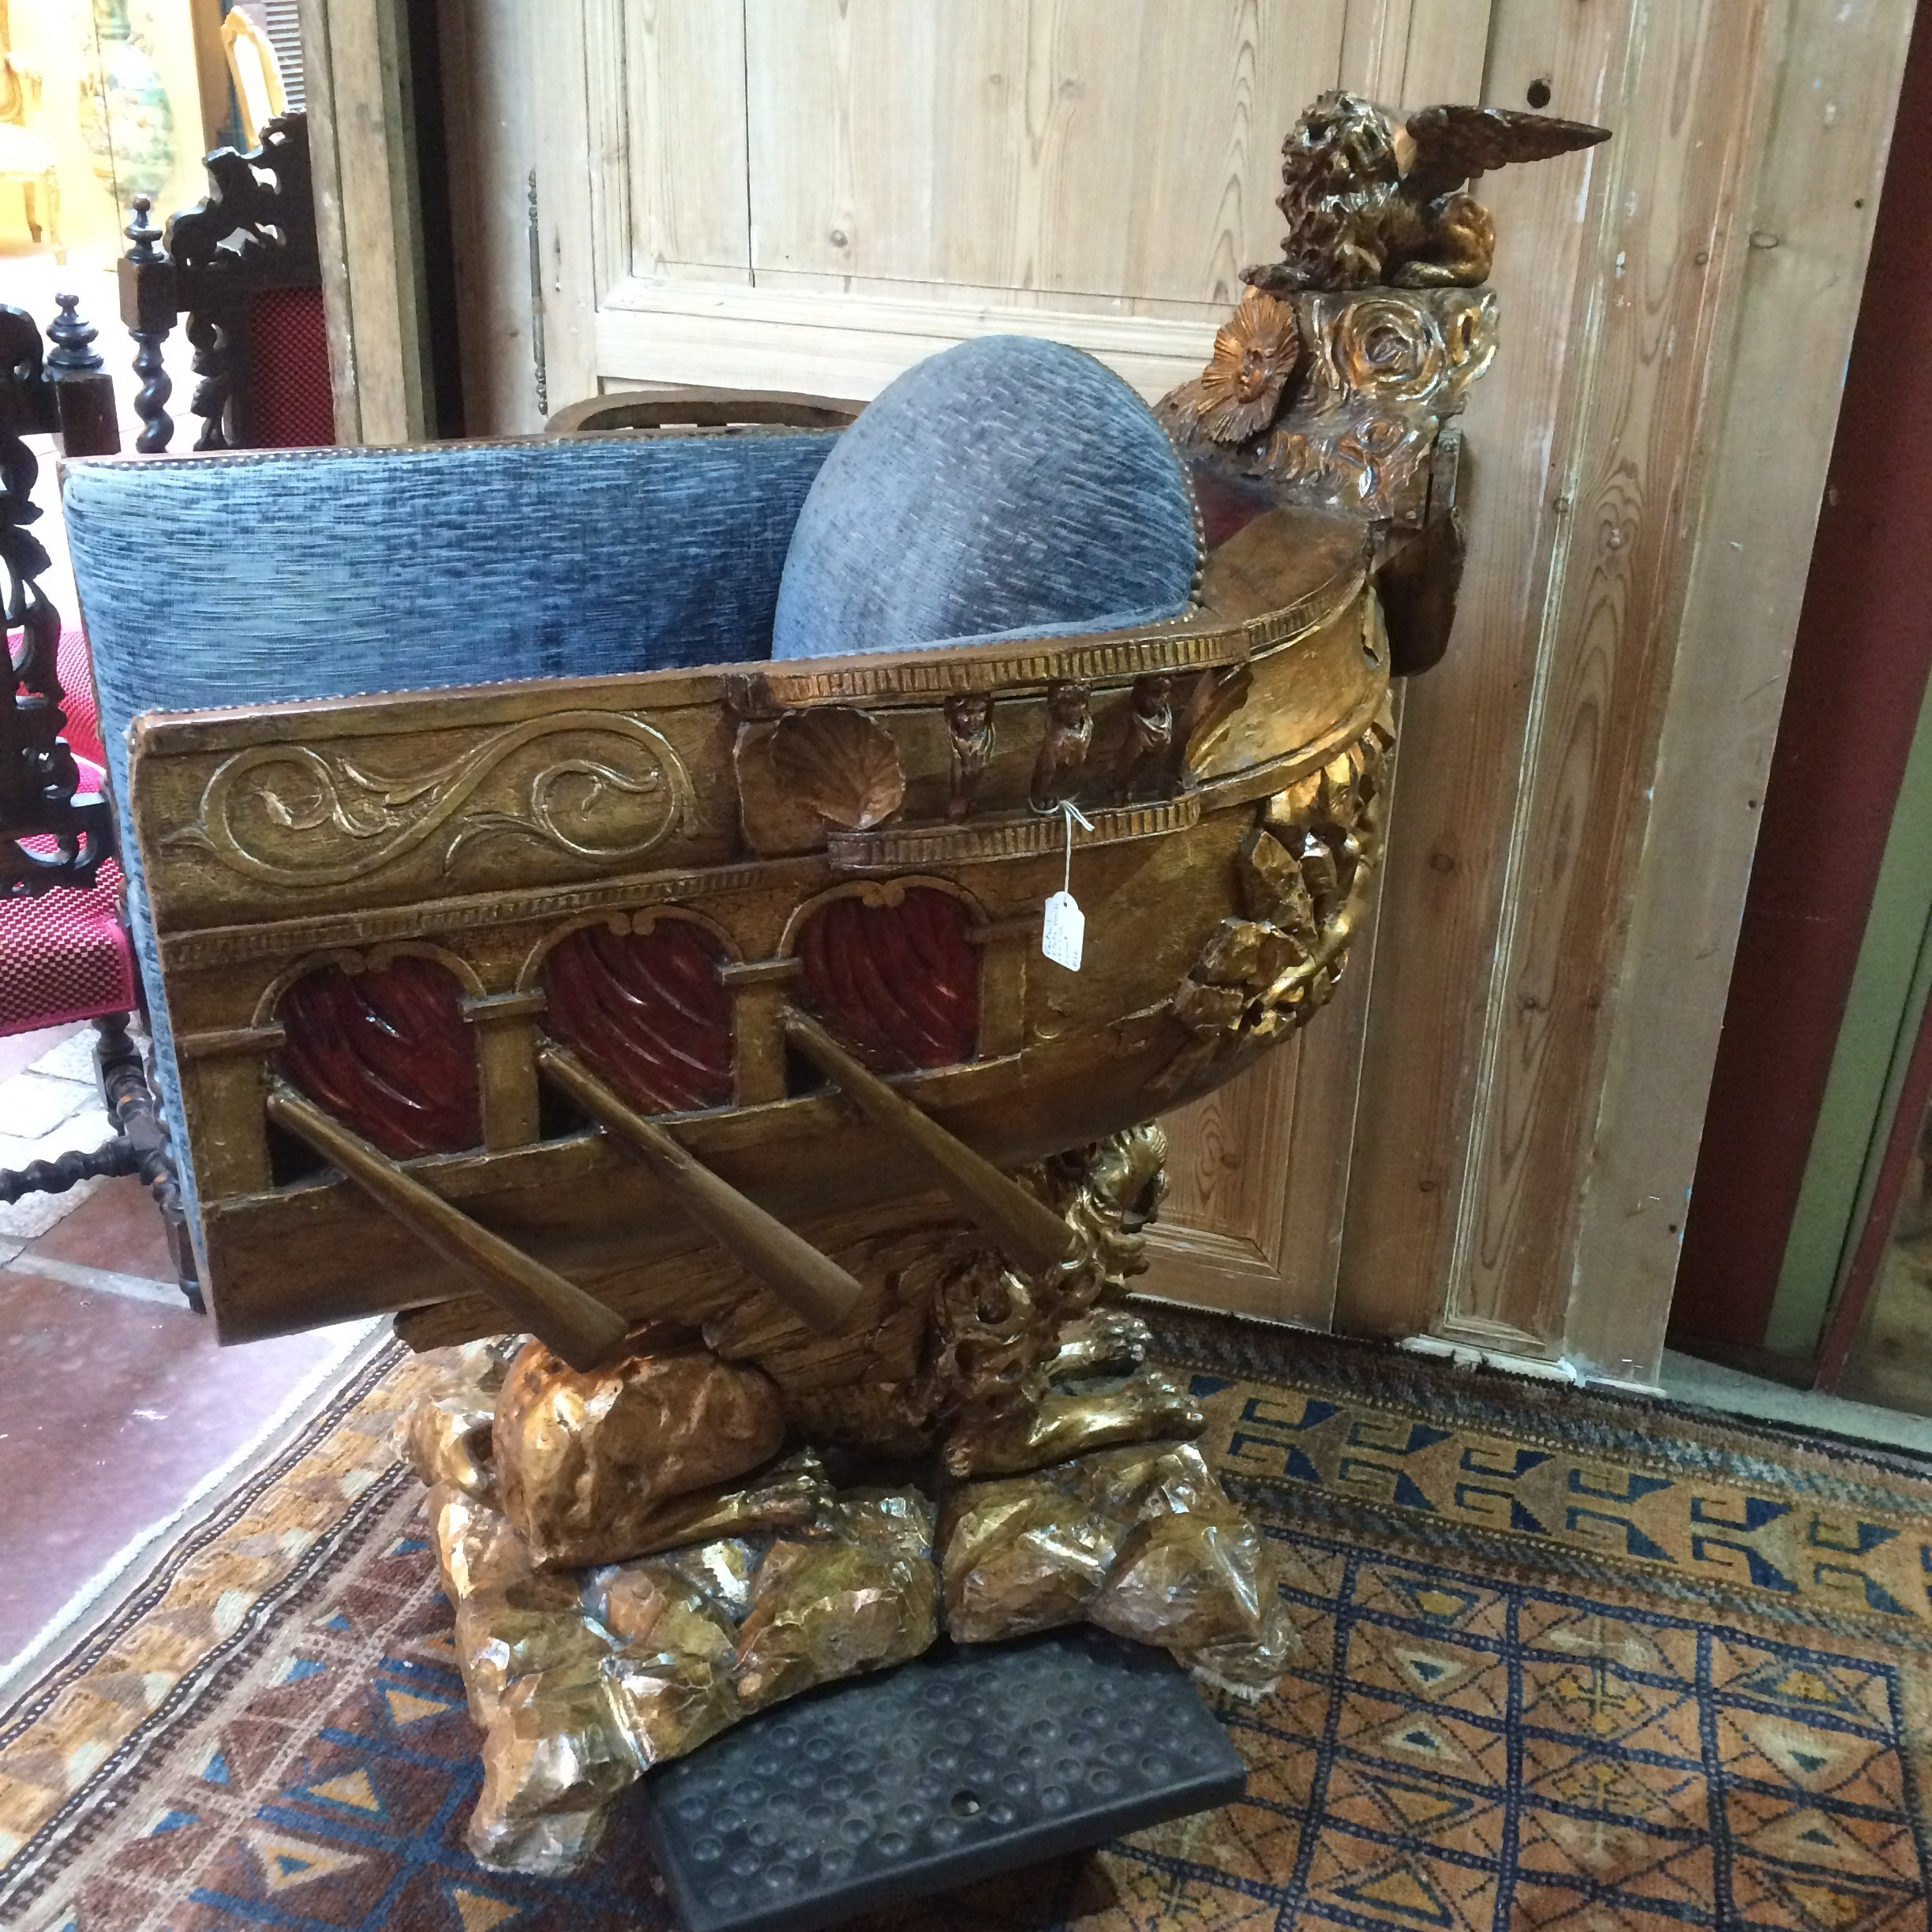 A raised boat chair